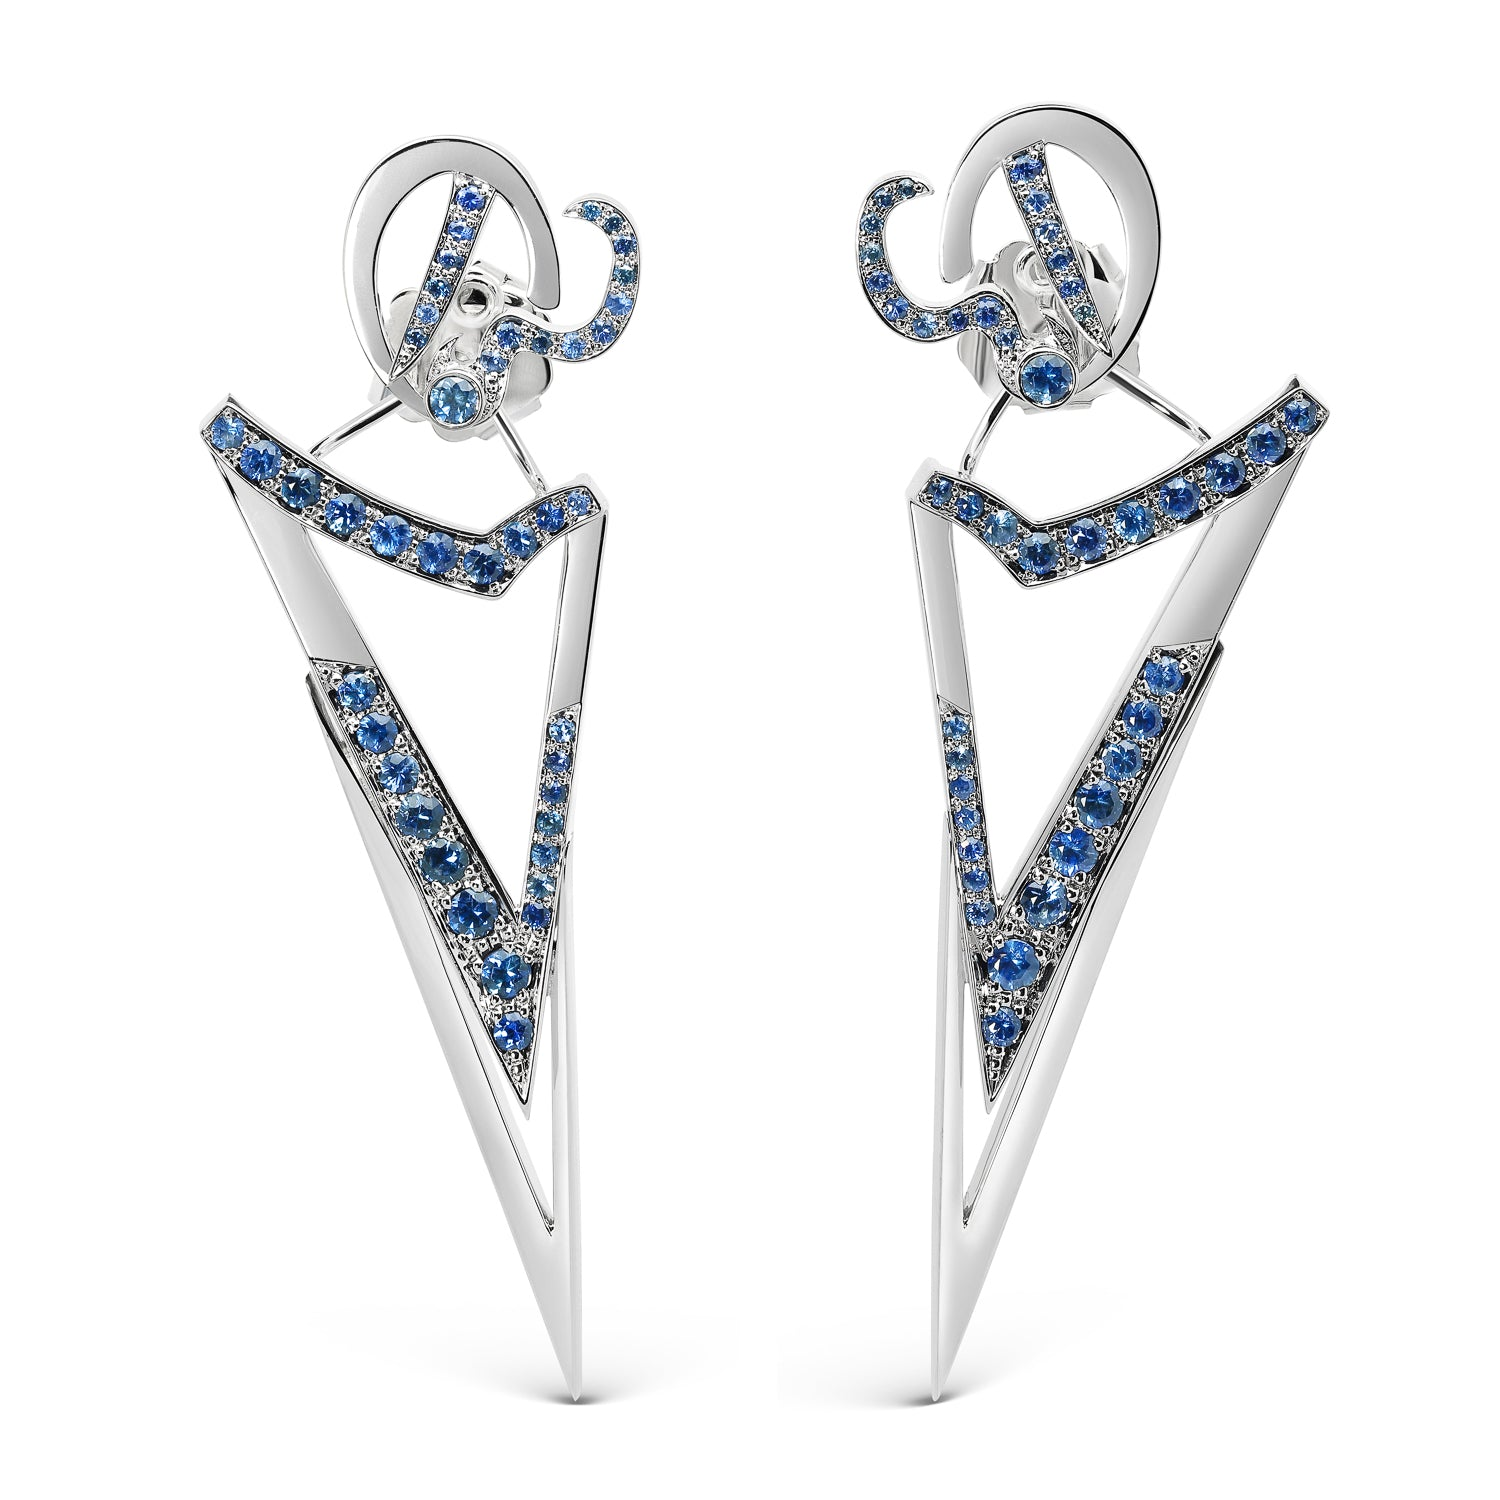 Bespoke Arrow Sapphire Earrings - 18ct white gold, ethical blue sapphires and dismountable structure